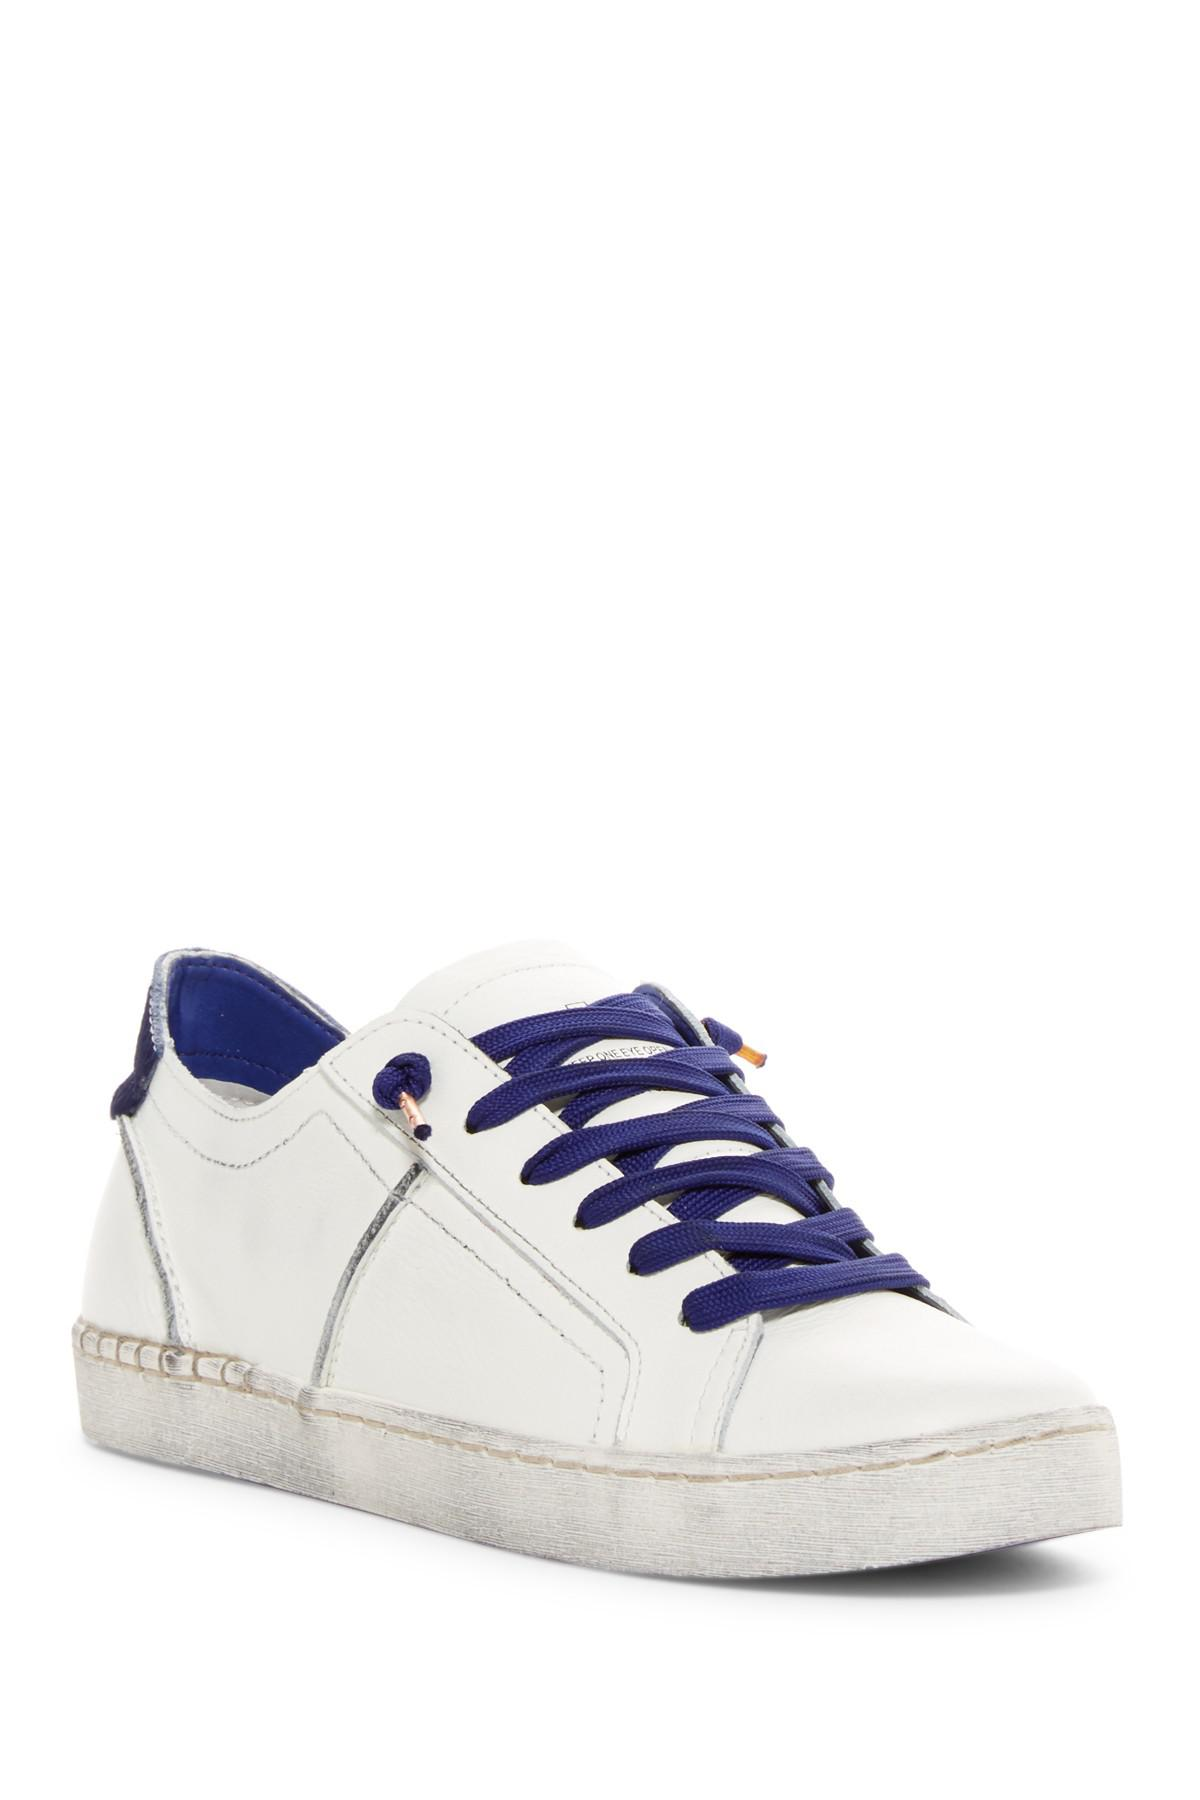 Mid Wedge Sneakers Blue and White Dolce Vita buy cheap with paypal deals online 2014 newest cheap online visit sale online cheap price from china CBxAia